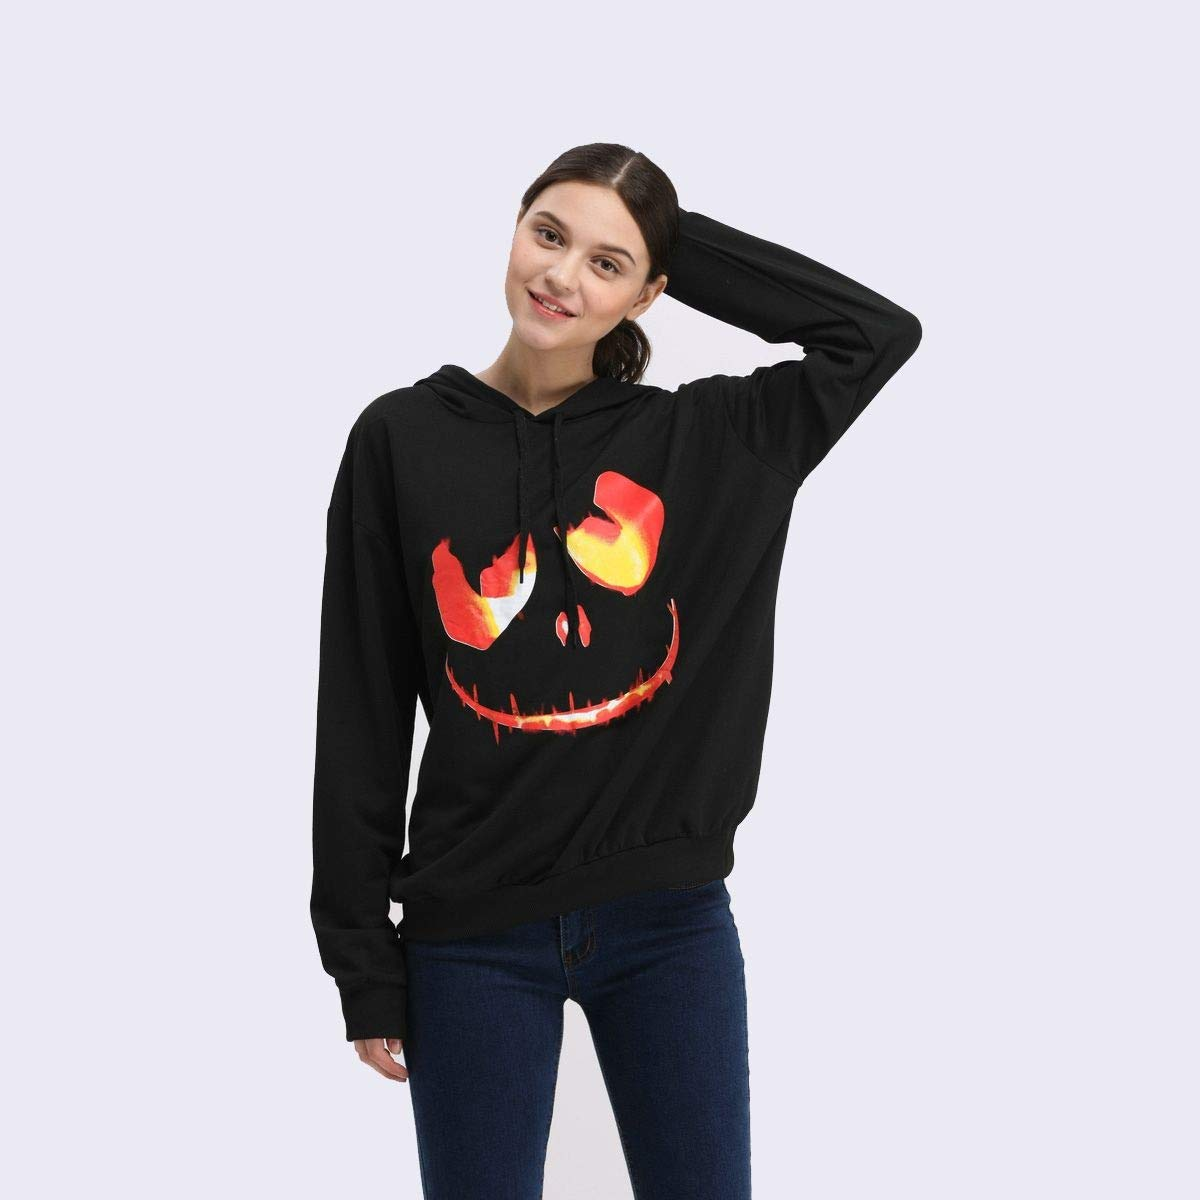 Plus Size Ugly Christmas Sweater.Sweaay Fashion Ugly Christmas Sweater Hooded Sweater Pullover Loose Sweater Devil Print Women Plus Size